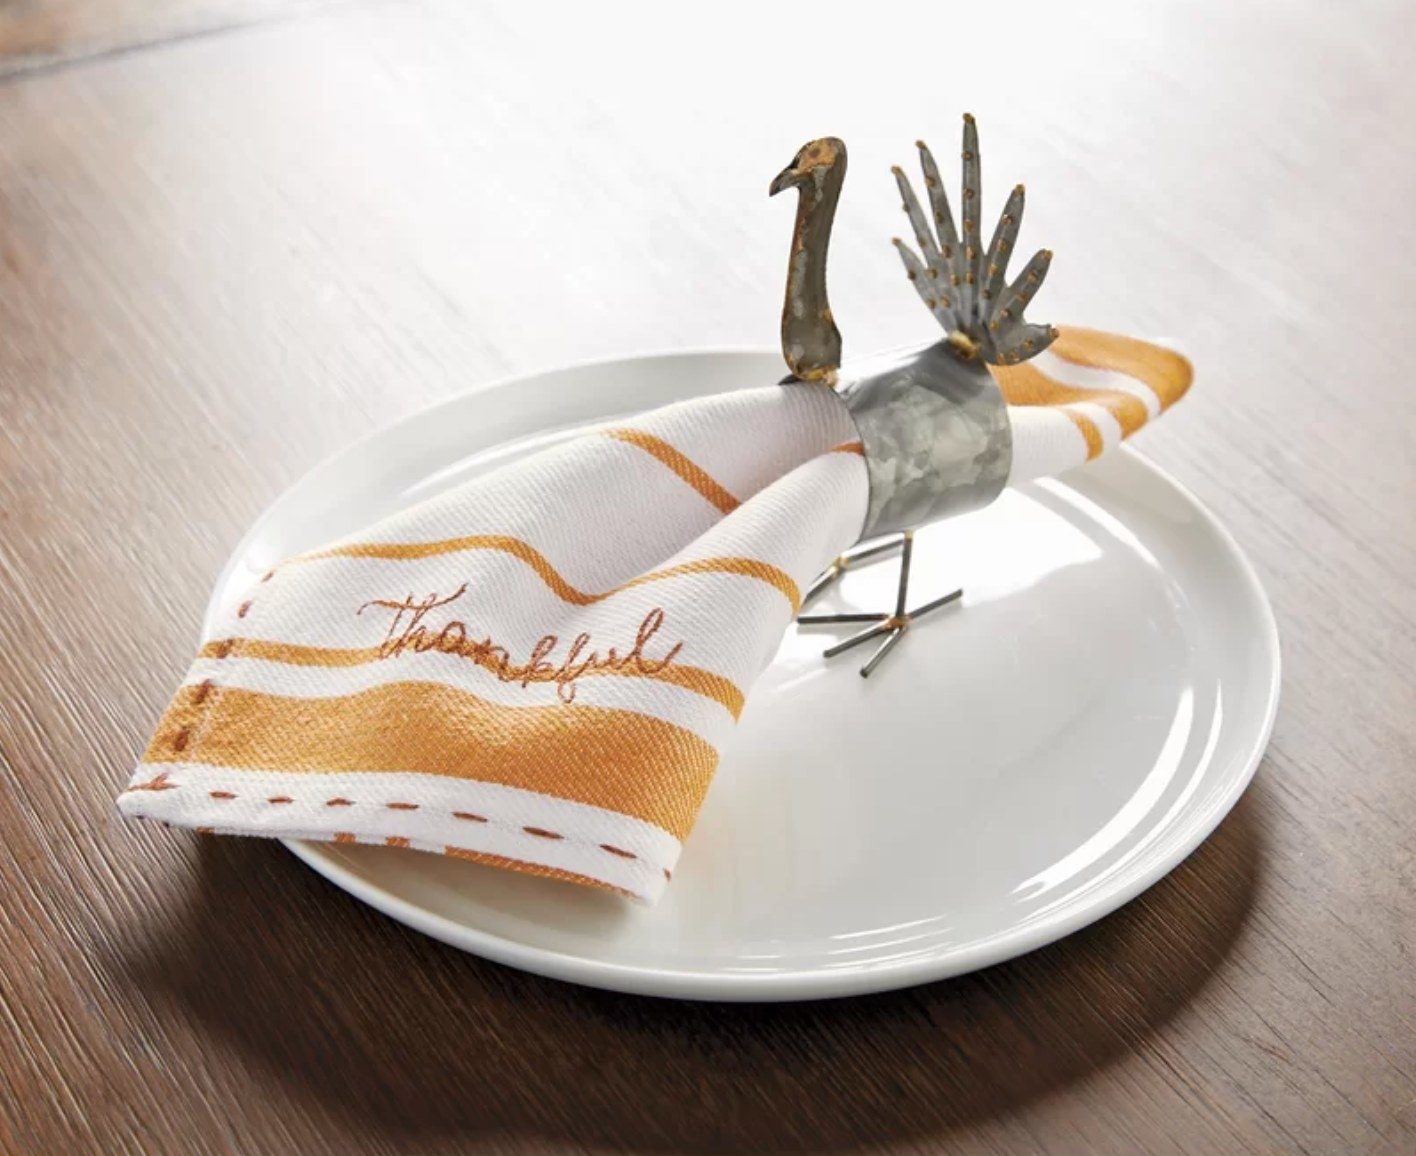 The set of four Thanksgiving-inspired napkins in white and orange